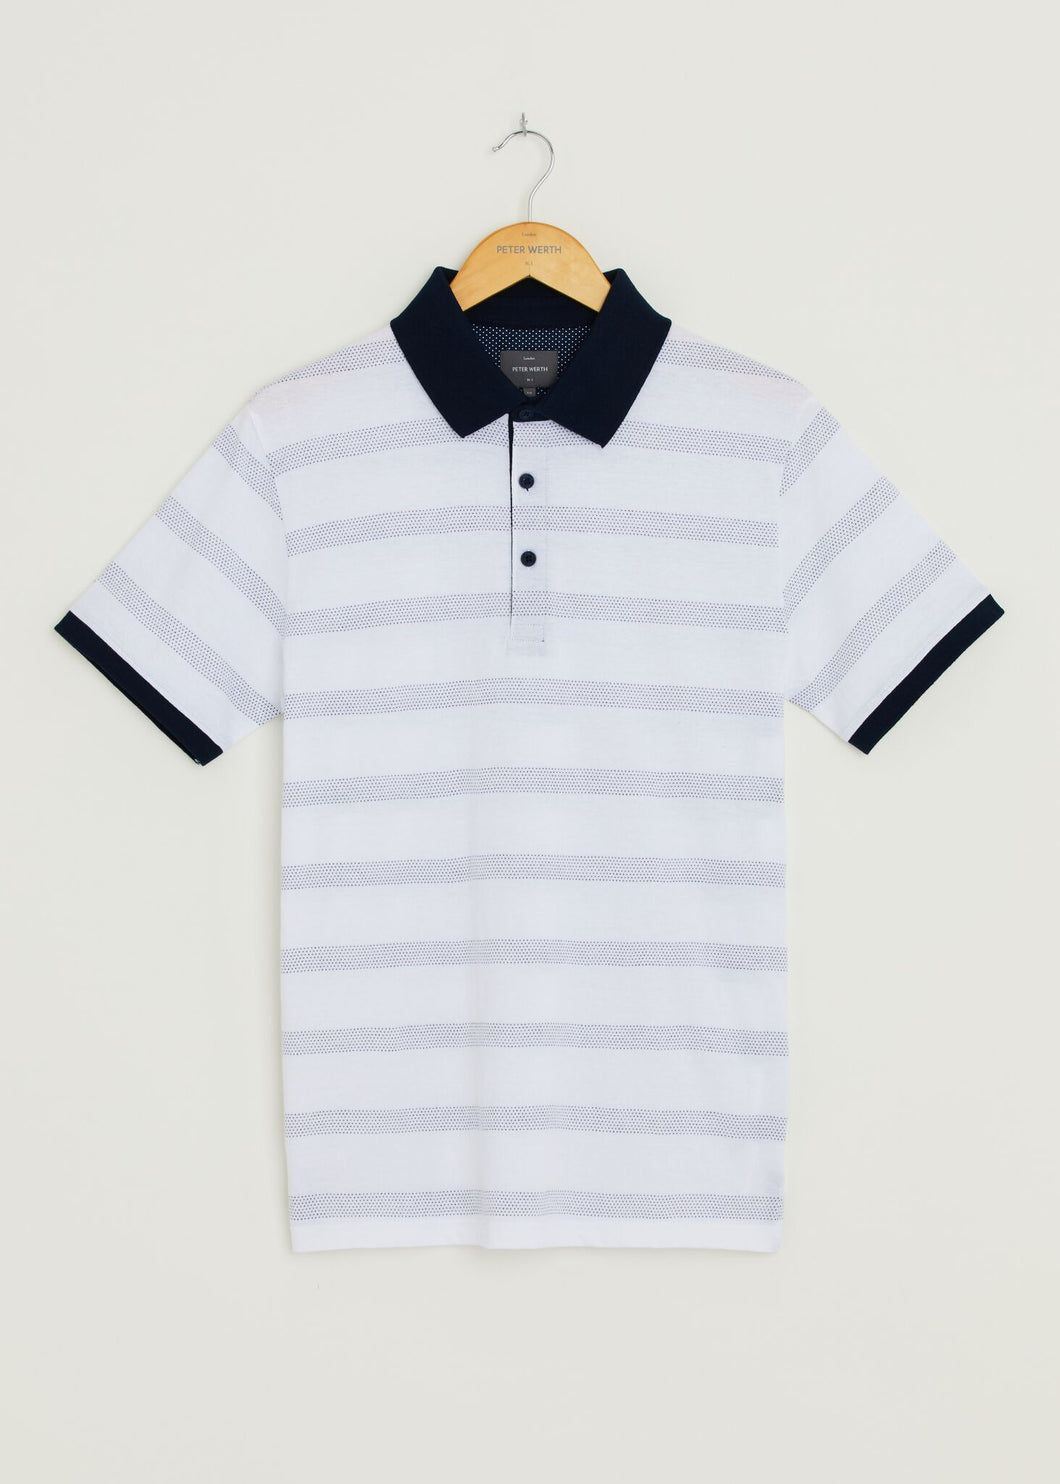 Orchard Polo Shirt - White